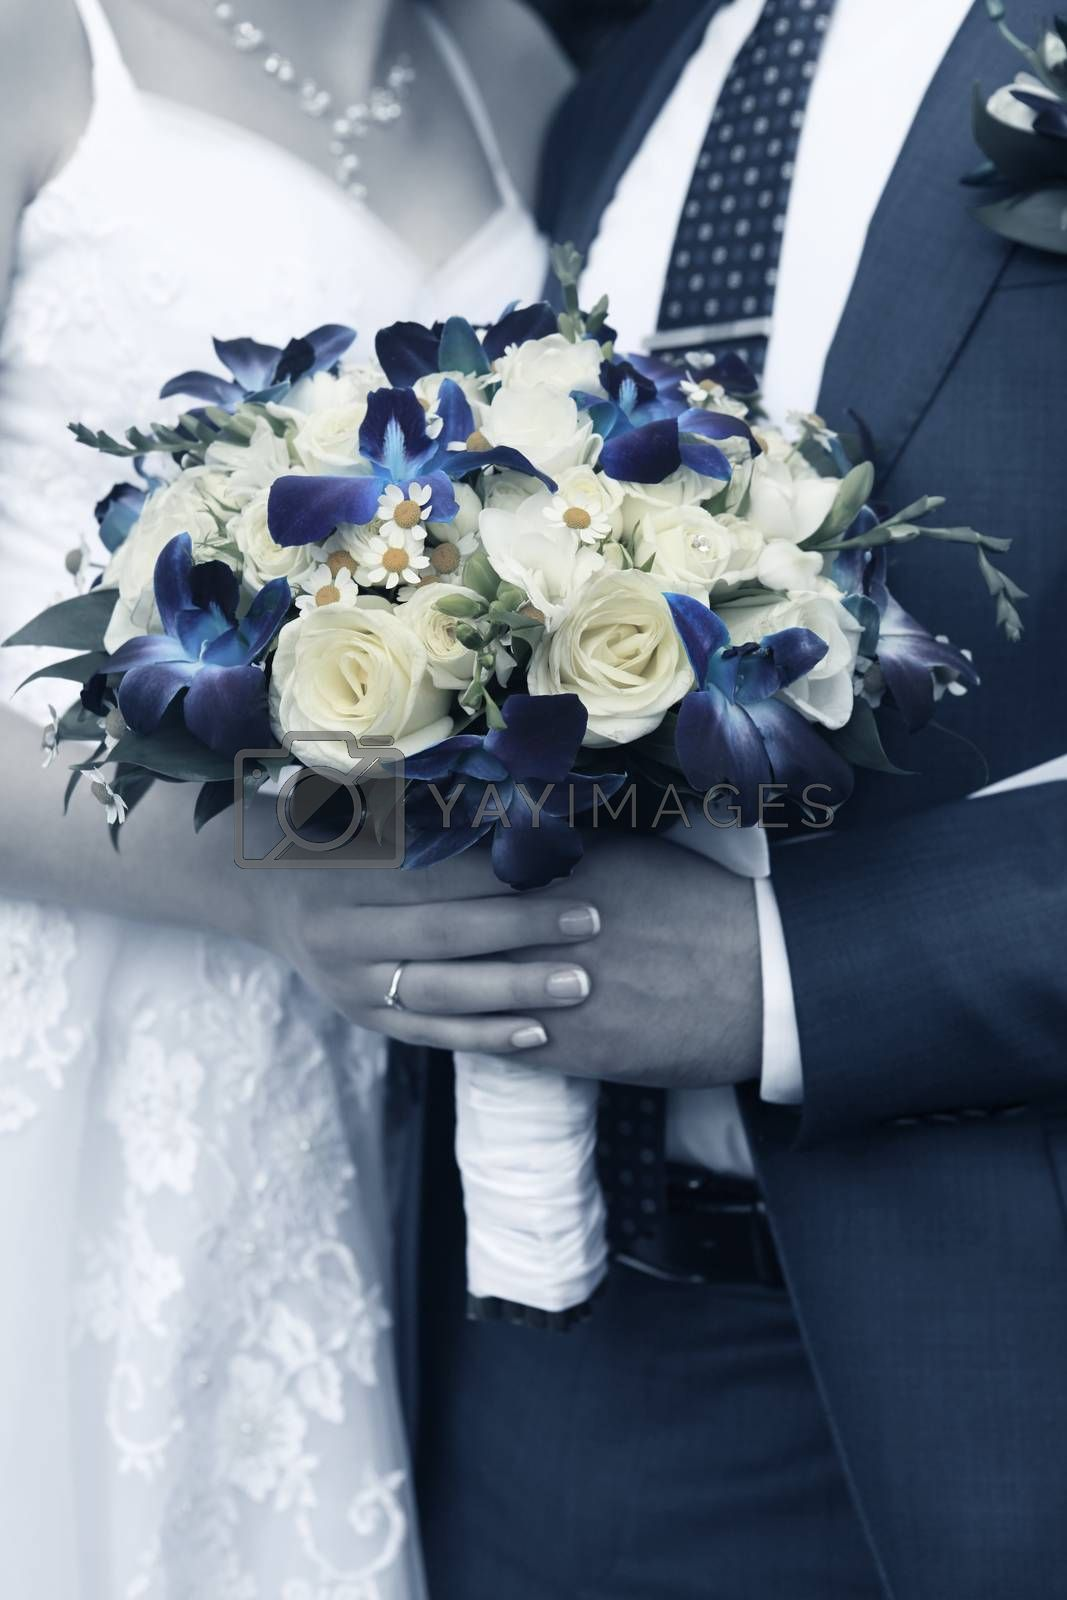 Hand of the groom and the bride with wedding bouquet